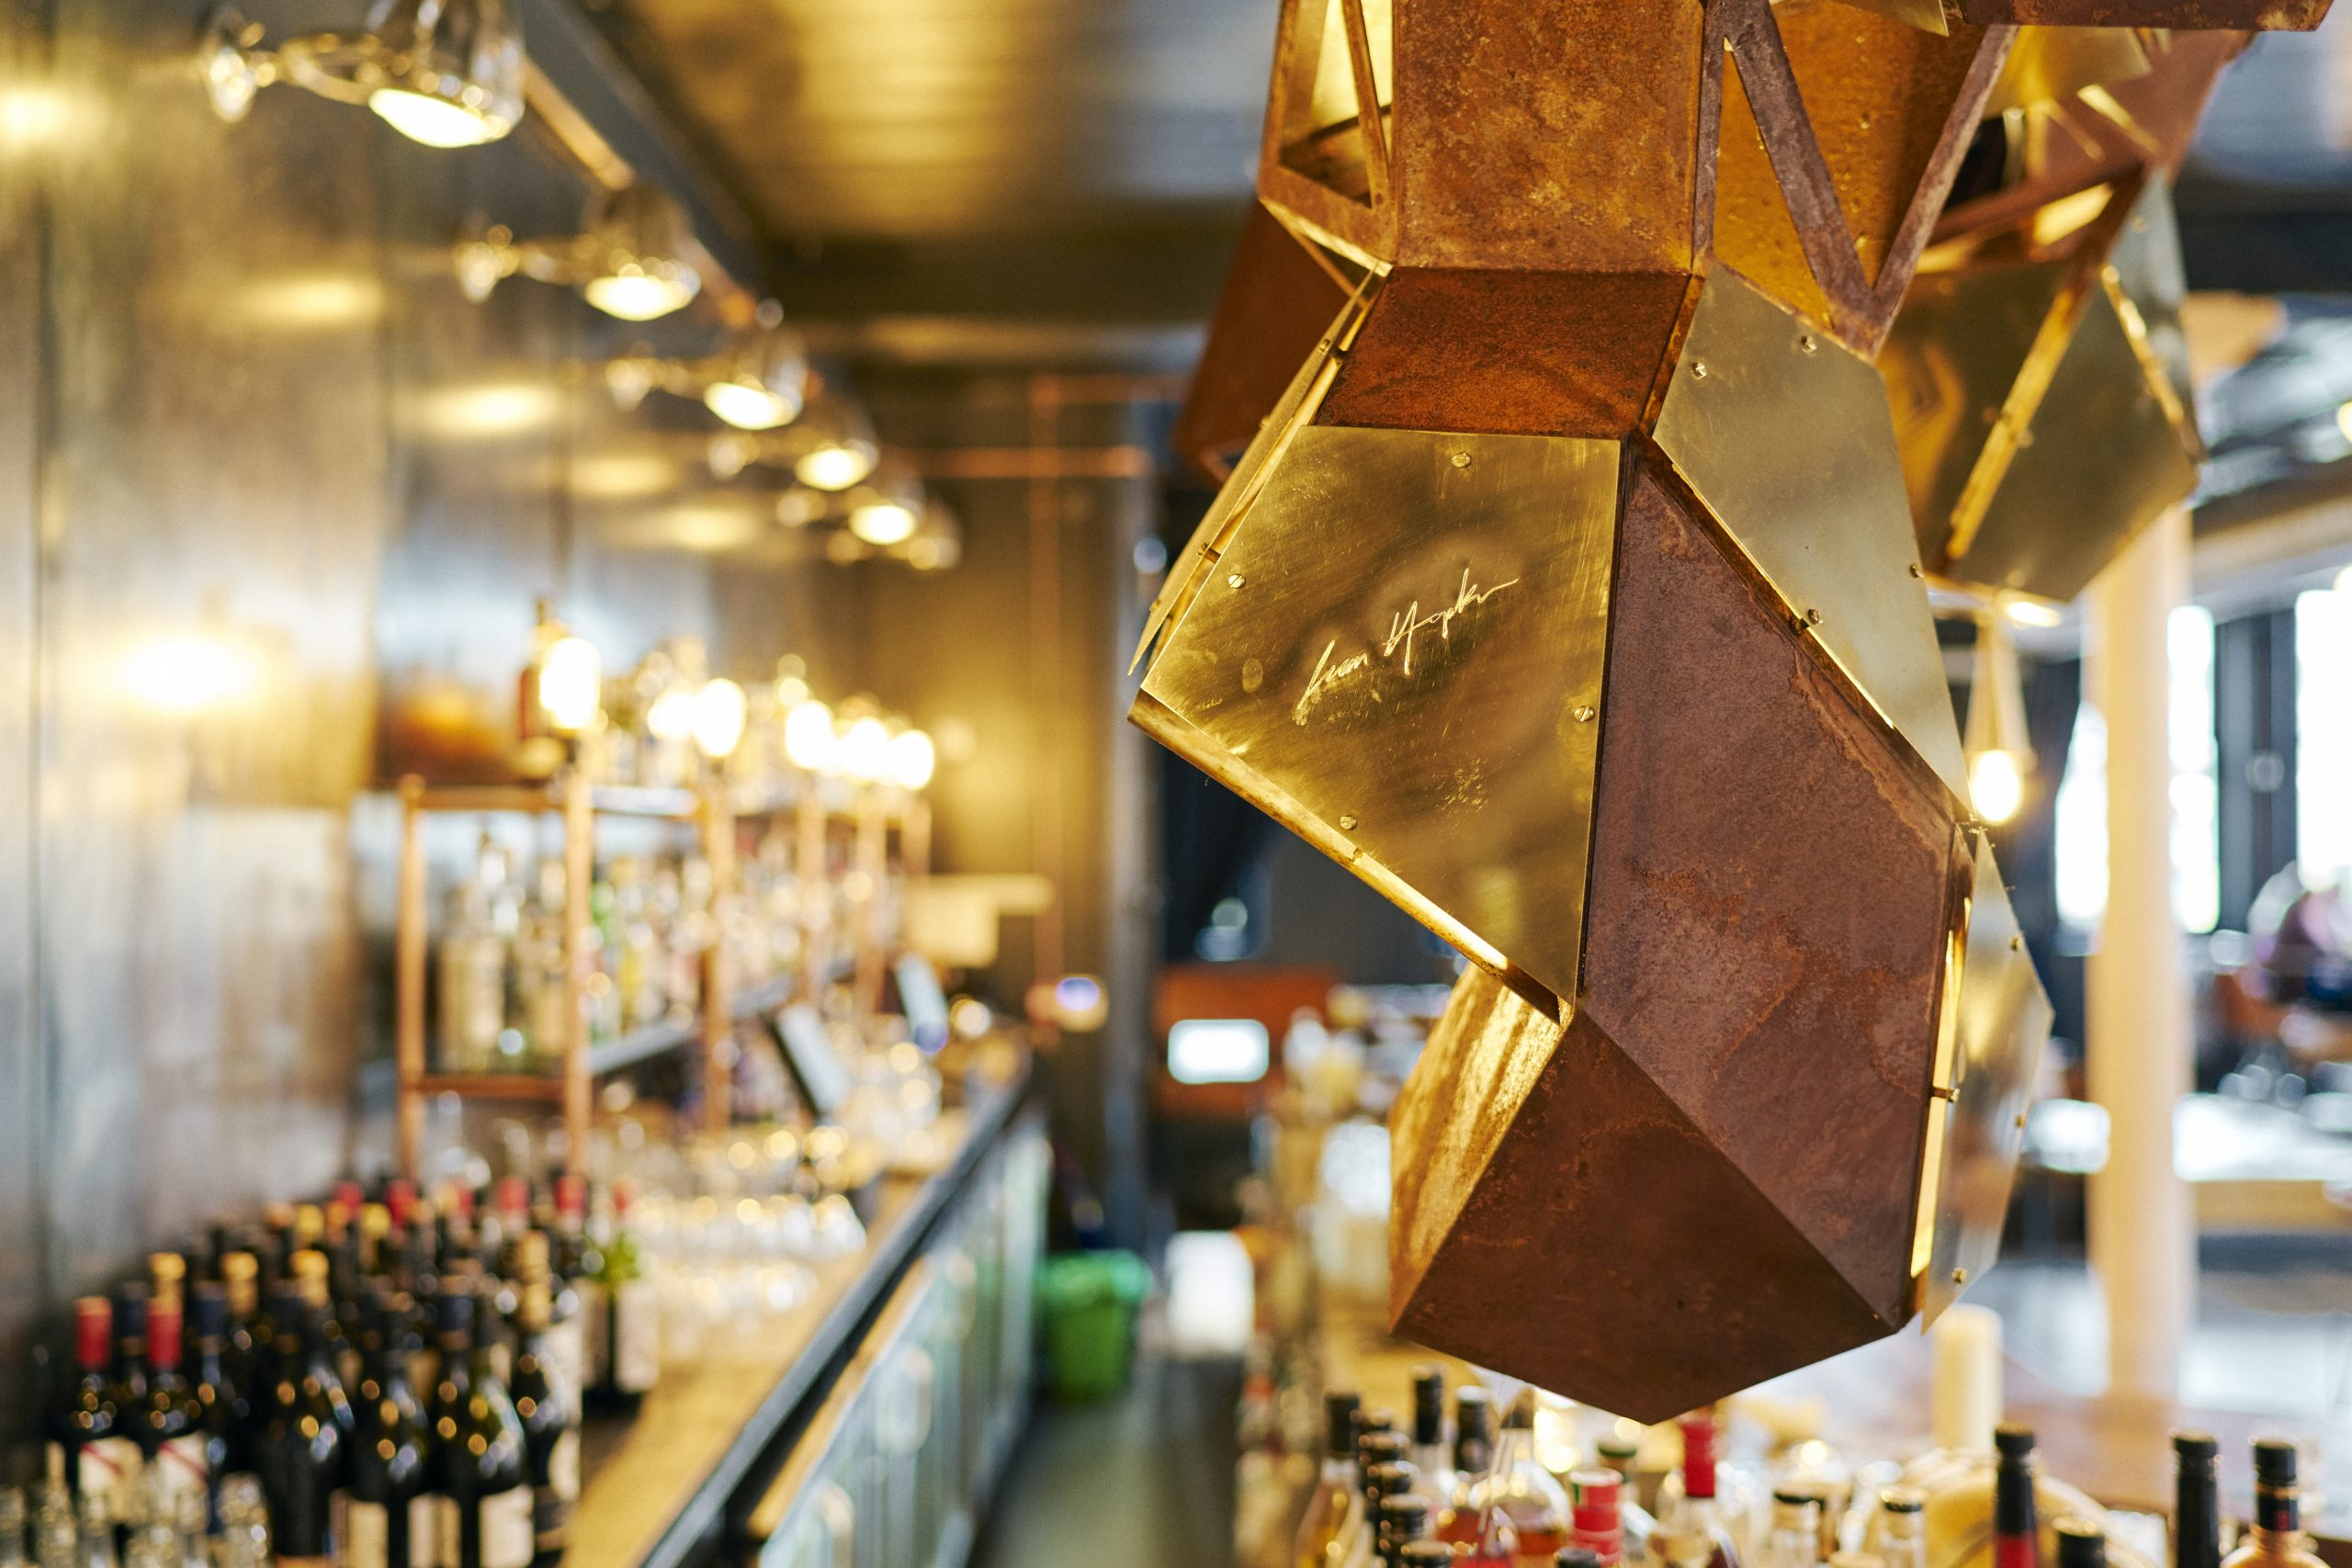 Close up of public art sculpture designed by Lazerian. positioned over the bar in Manchester bar and restaurant Corttonopolis